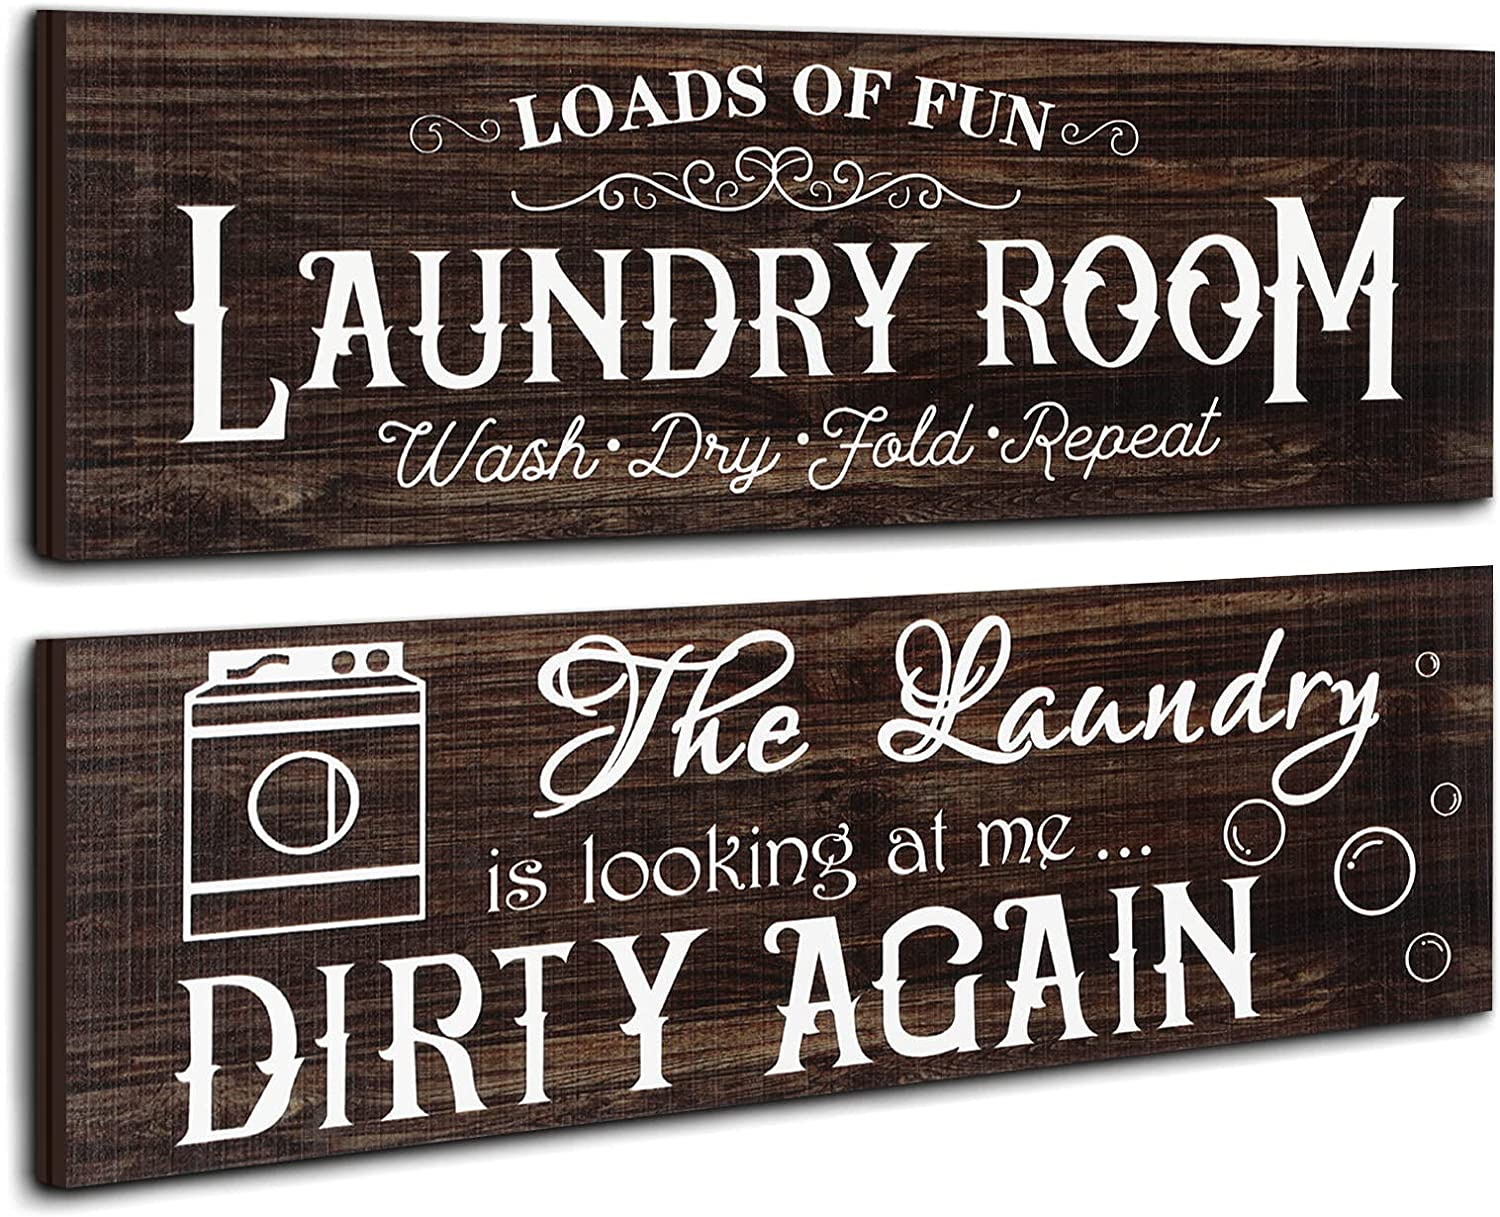 Jetec 2 Pieces Laundry Room Wooden Signs Rustic Family Farmhouse Laundry Room Wall Decor Vintage Bathroom Wall Sign Laundry Rules Hanging Printed Decor for Home Laundry Room, 13.8 x 4.7 Inch (Brown)